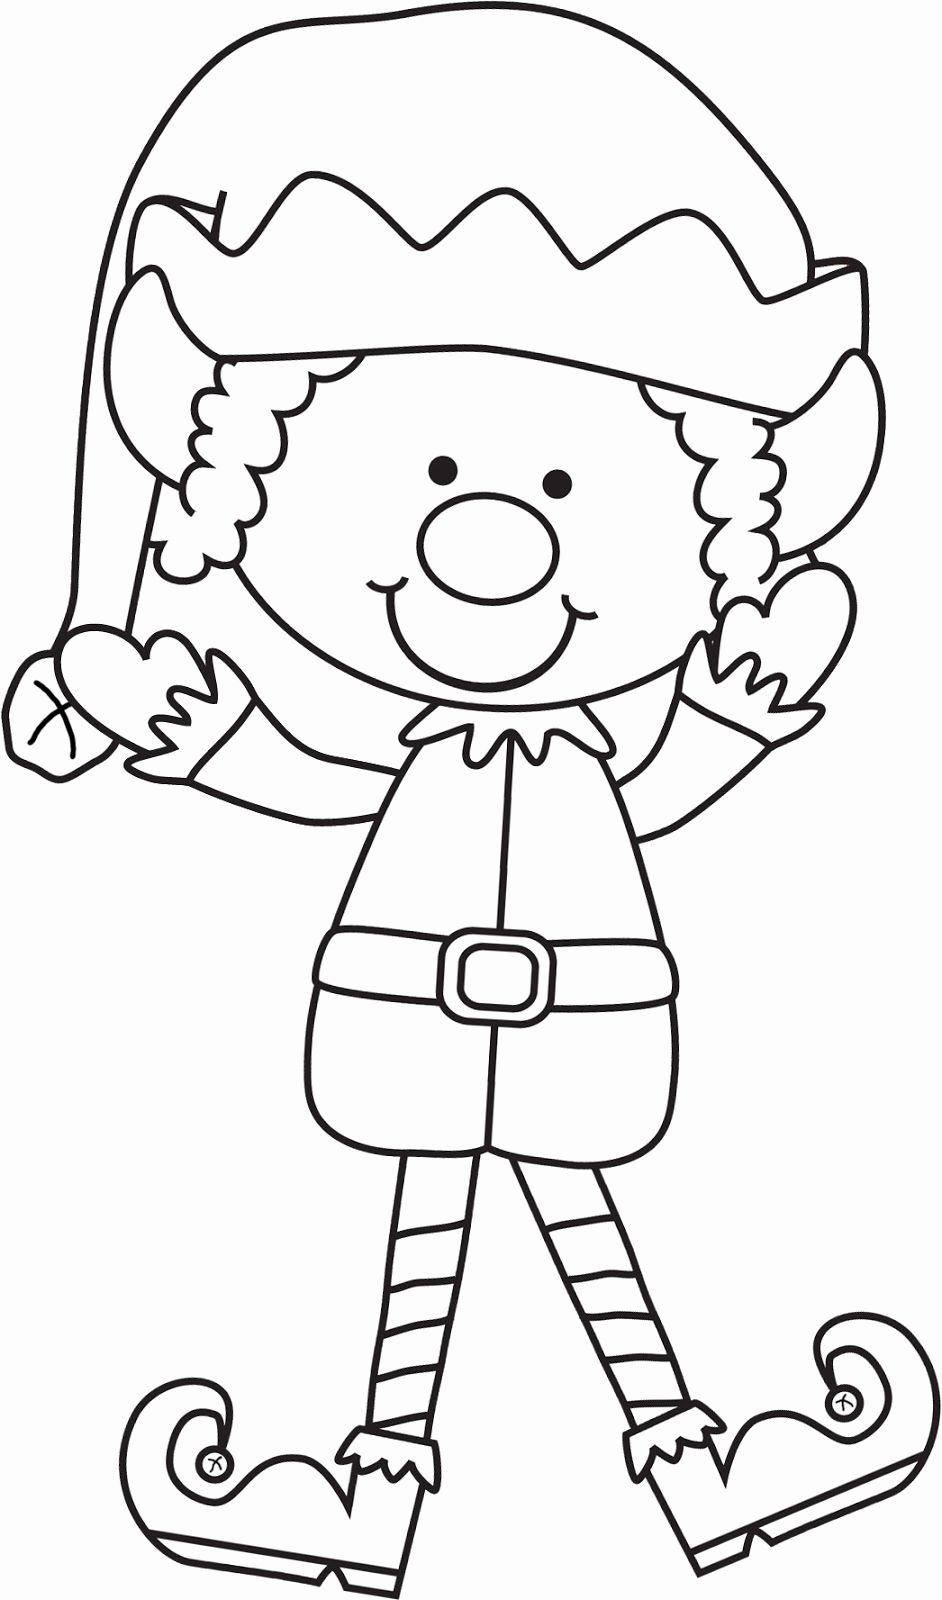 Christmas Elf Coloring Page Beautiful Black And White Boy Christmas Elf C Christmas Coloring Sheets Printable Christmas Coloring Pages Christmas Coloring Pages